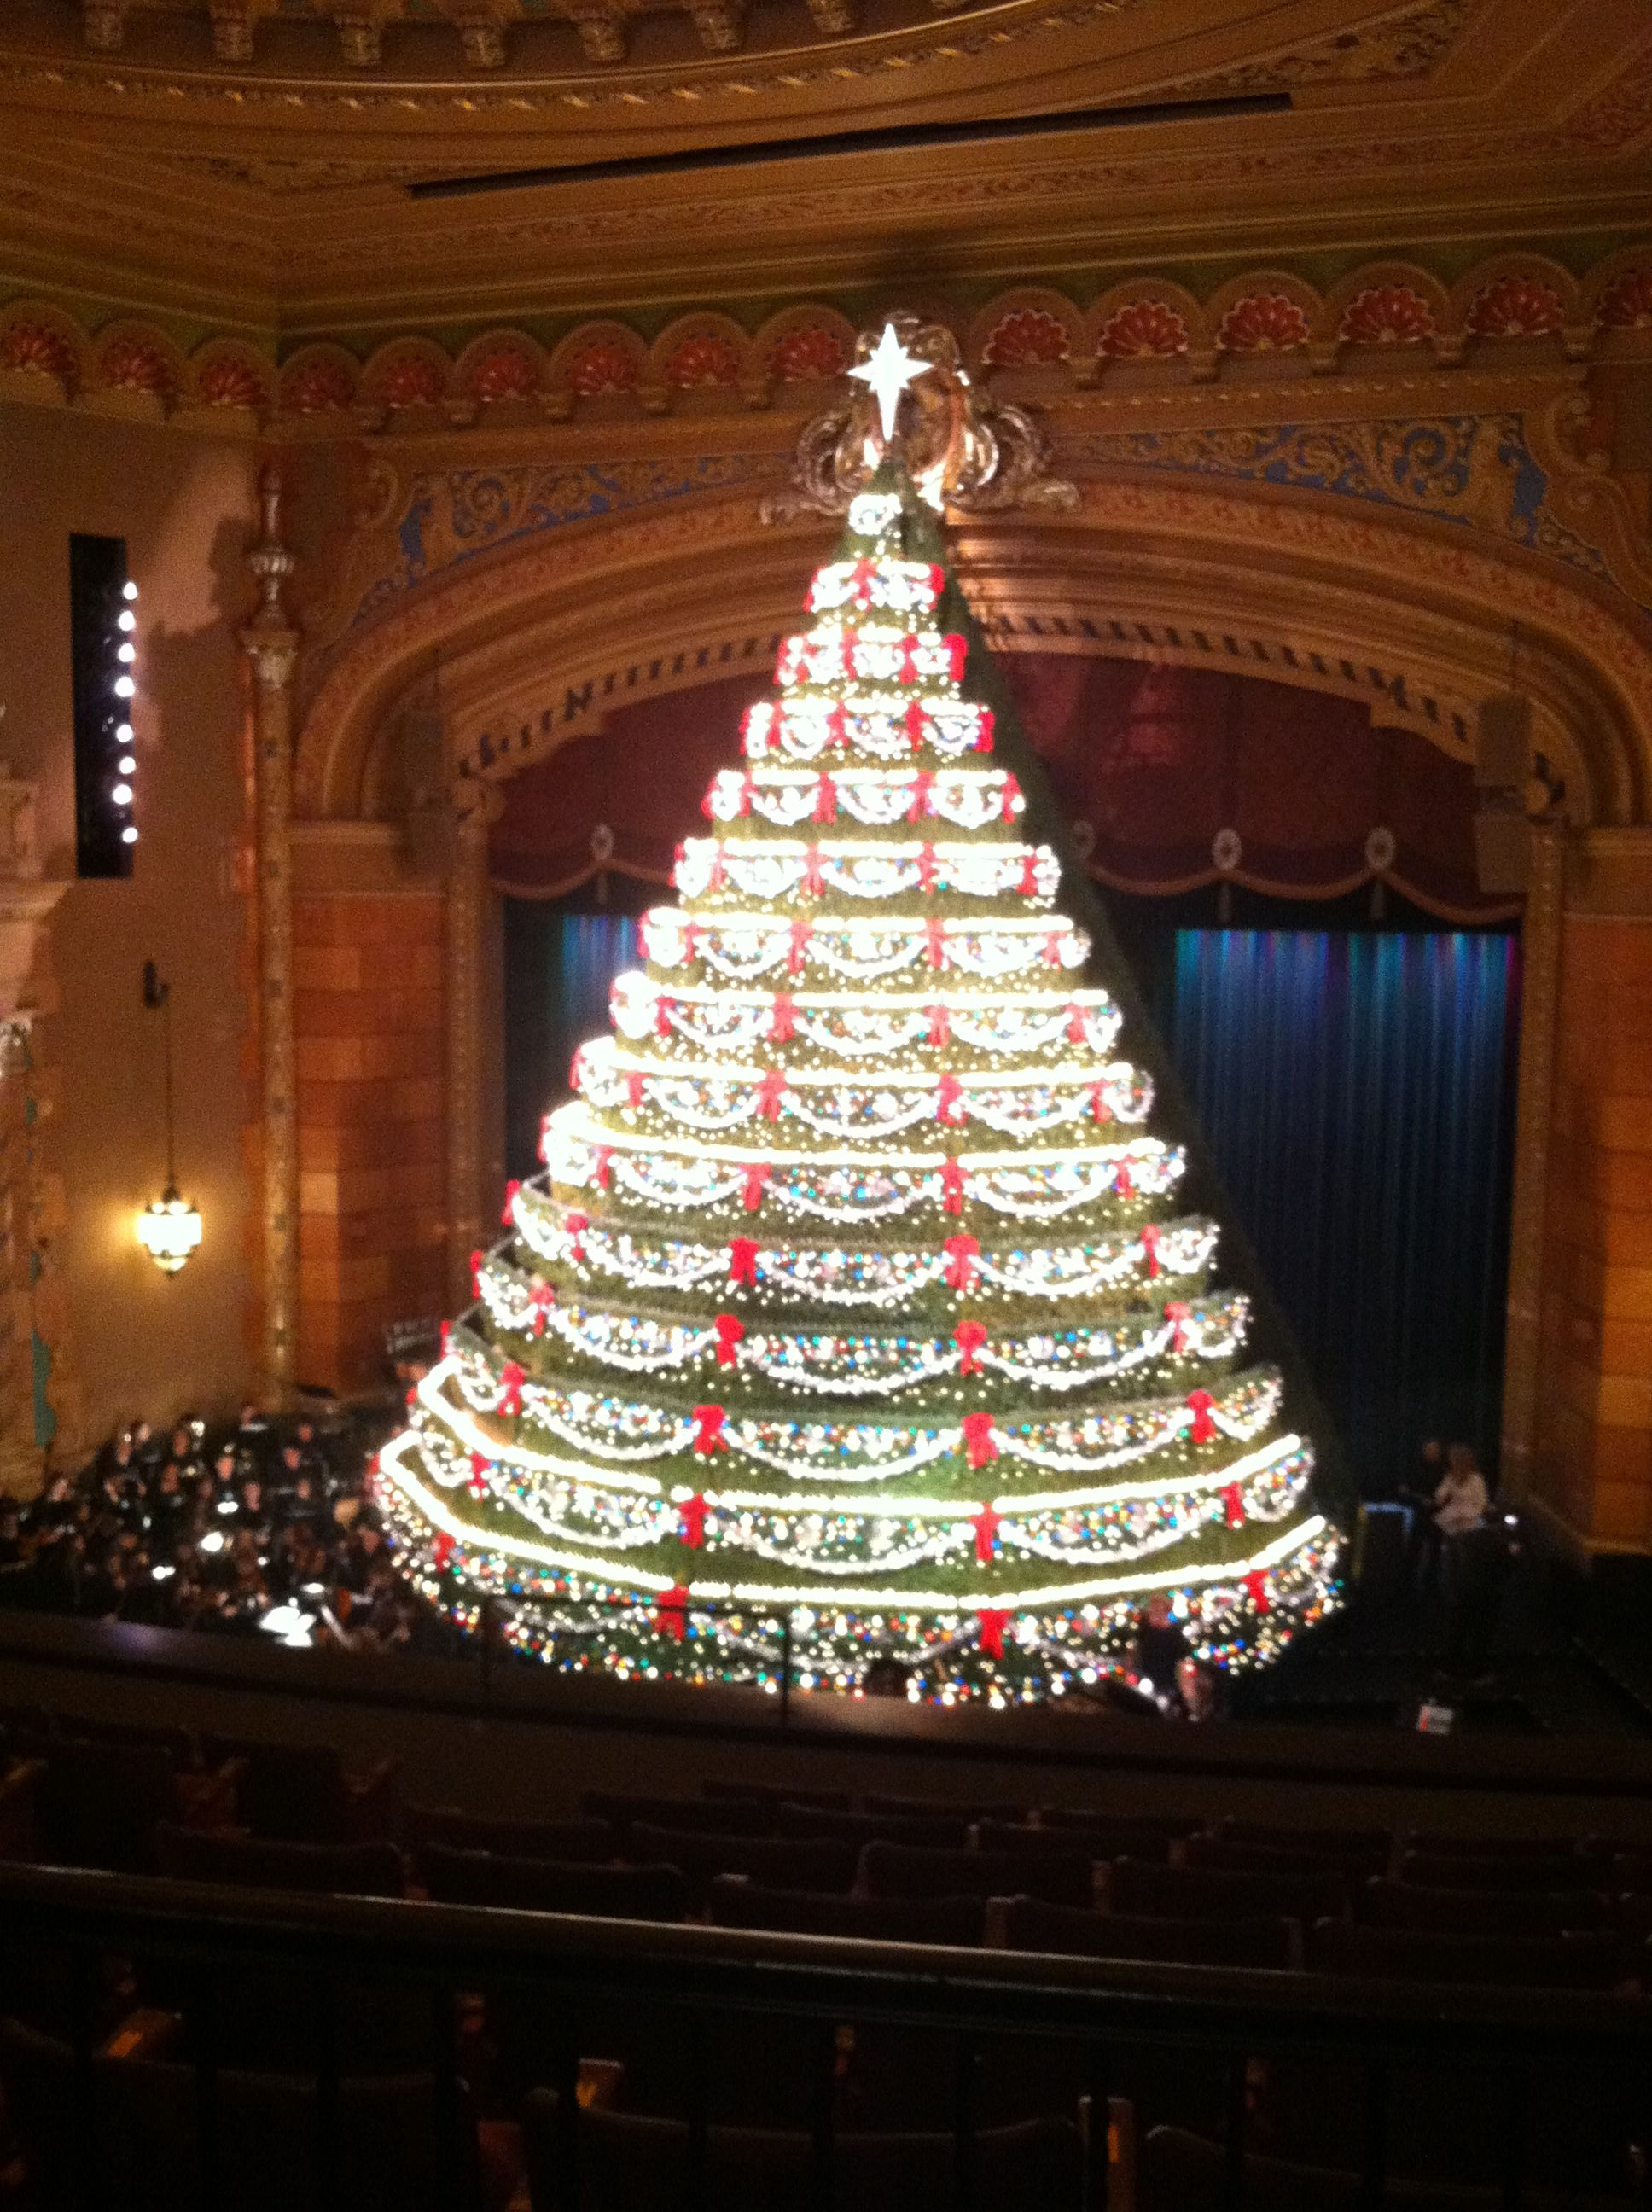 Christmas Holiday Events In Muskegon Mi 2020 Very proud that I was a part of this Mona Shores Singing Christmas